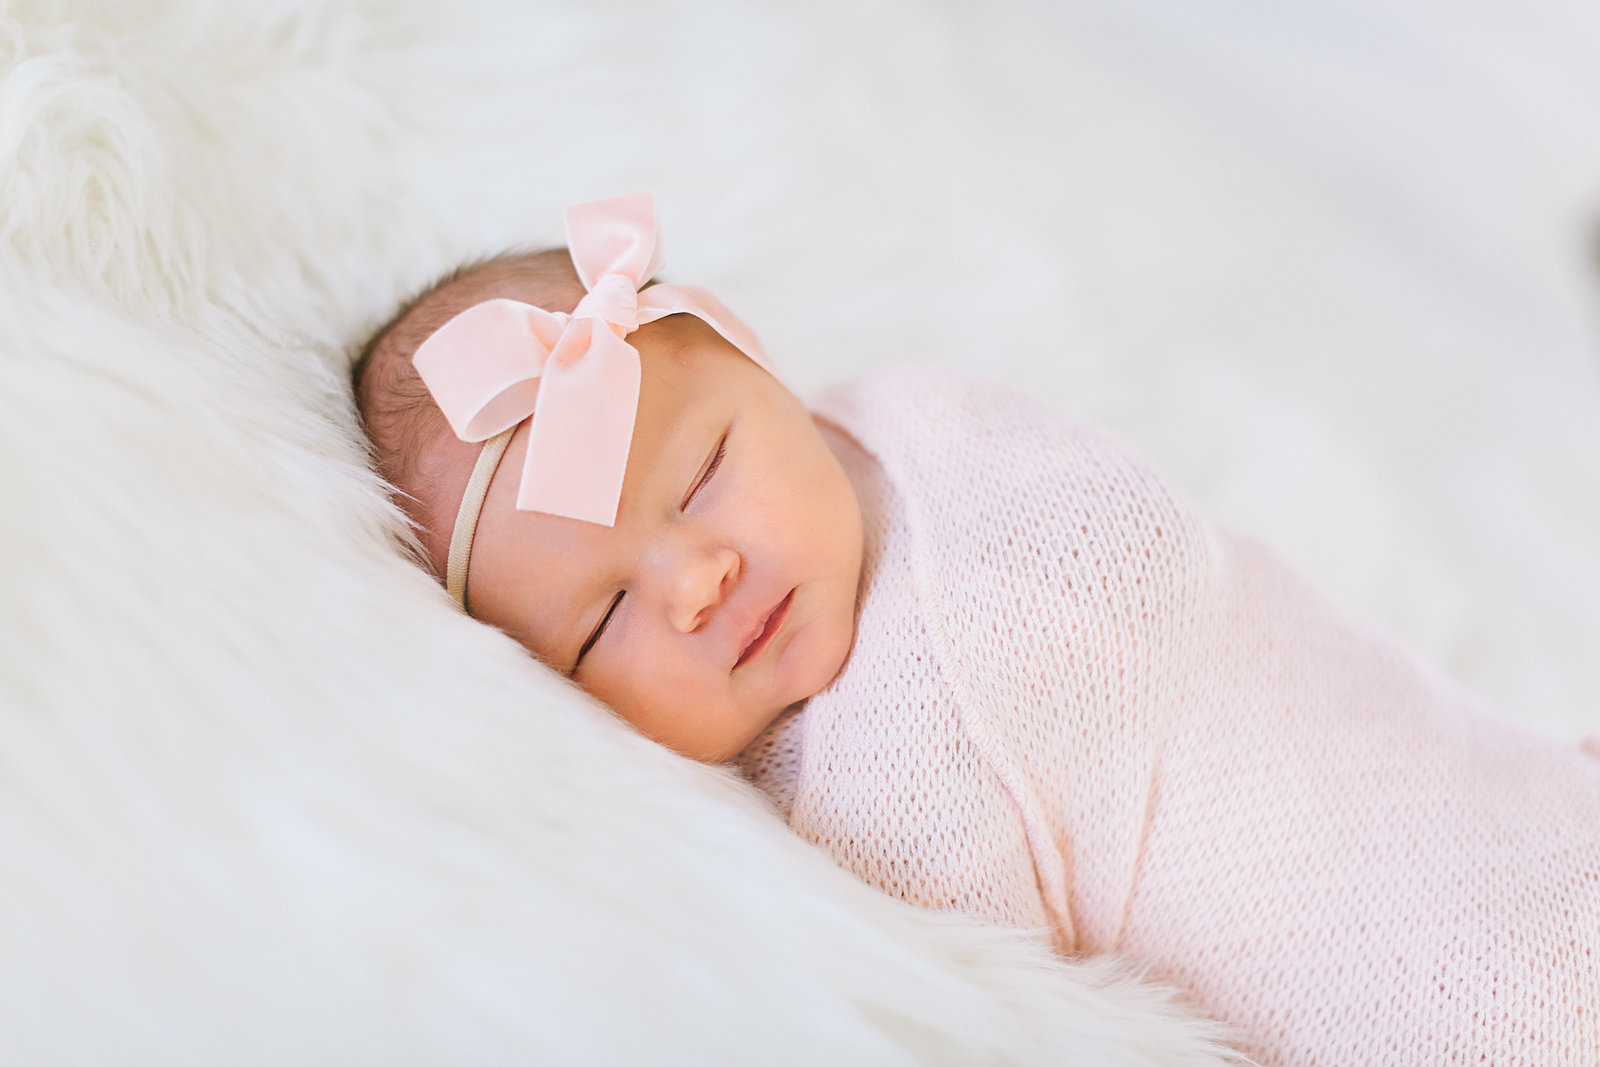 San-Juan-Capistrano-Beach-Newborn-Lifestyle-Photos_25